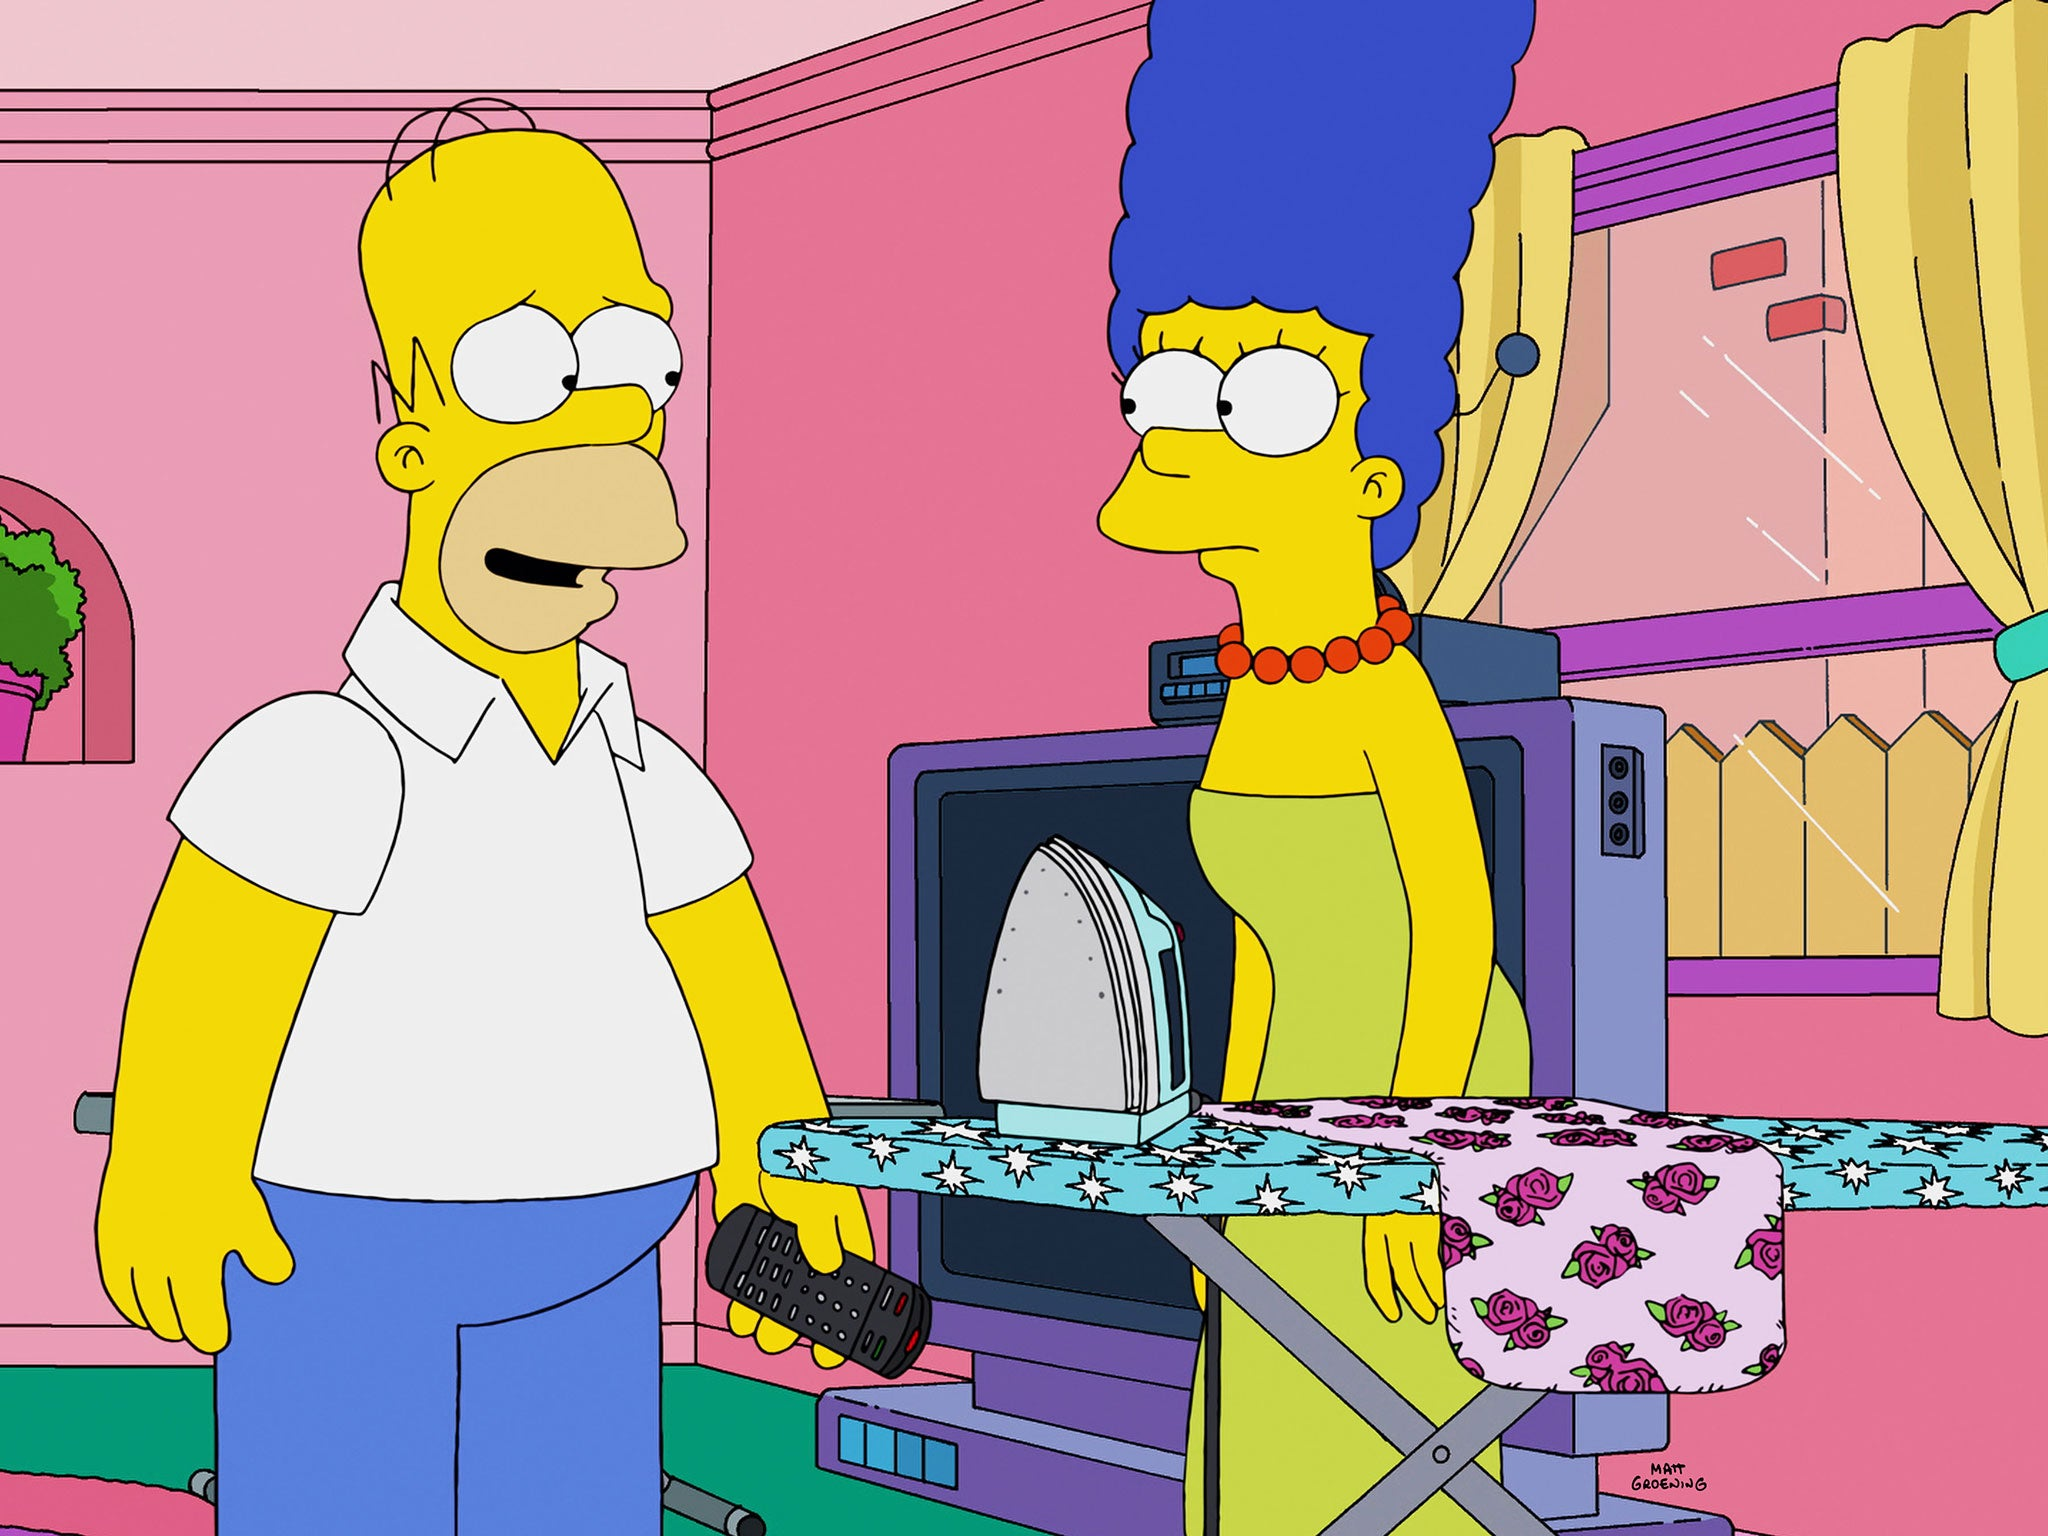 The Simpsons Bart dismisses rumours that Marge and Homer are